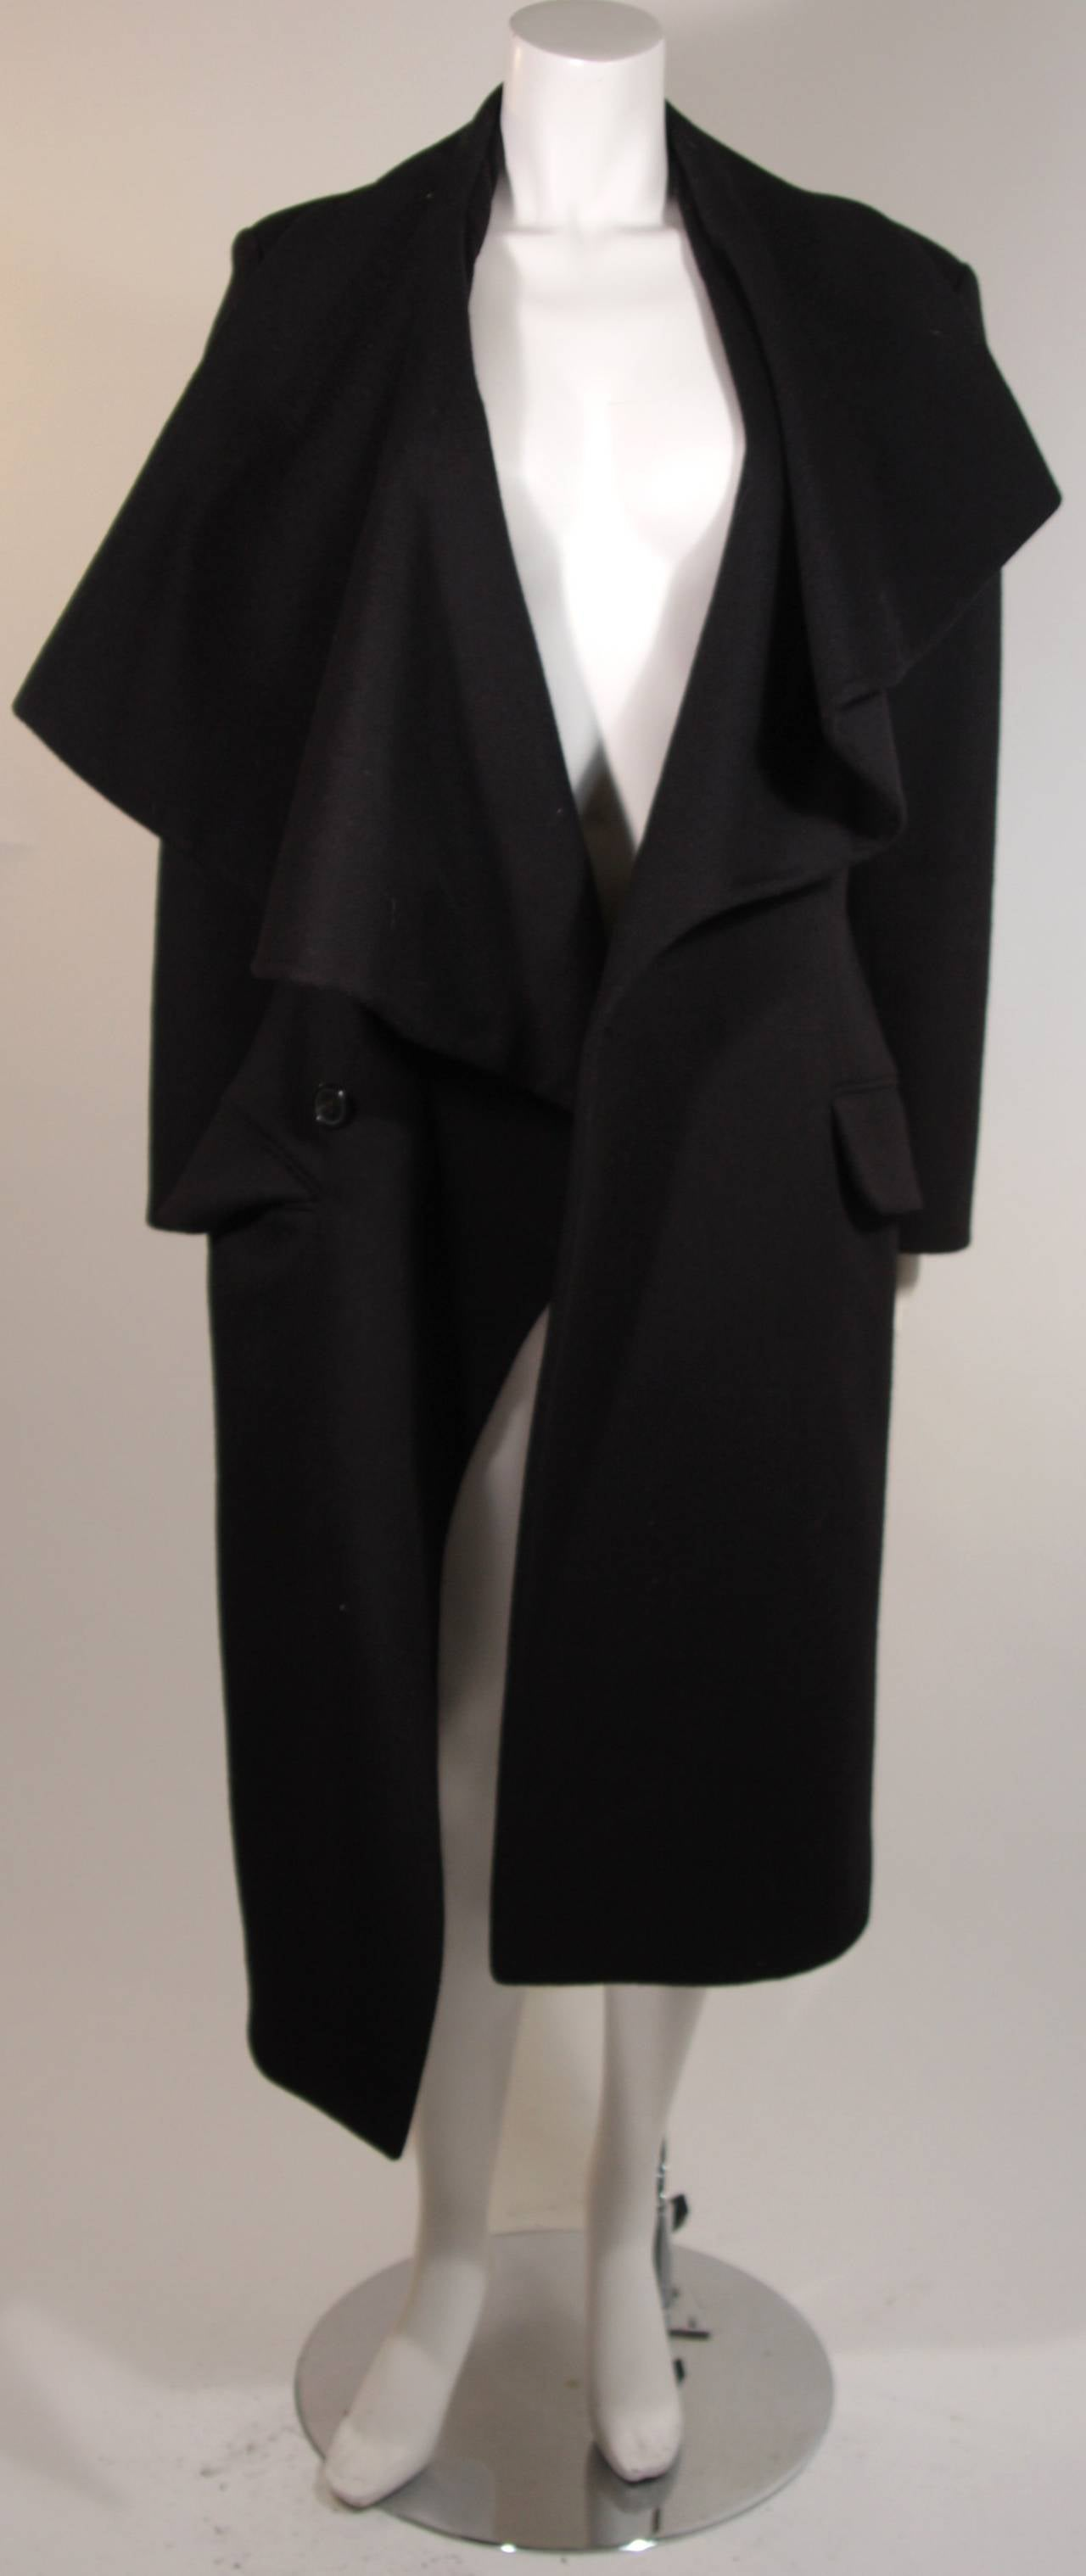 John Galliano Over-Sized Asymmetrical Collar Coat Size 10 42 In Excellent Condition For Sale In Los Angeles, CA